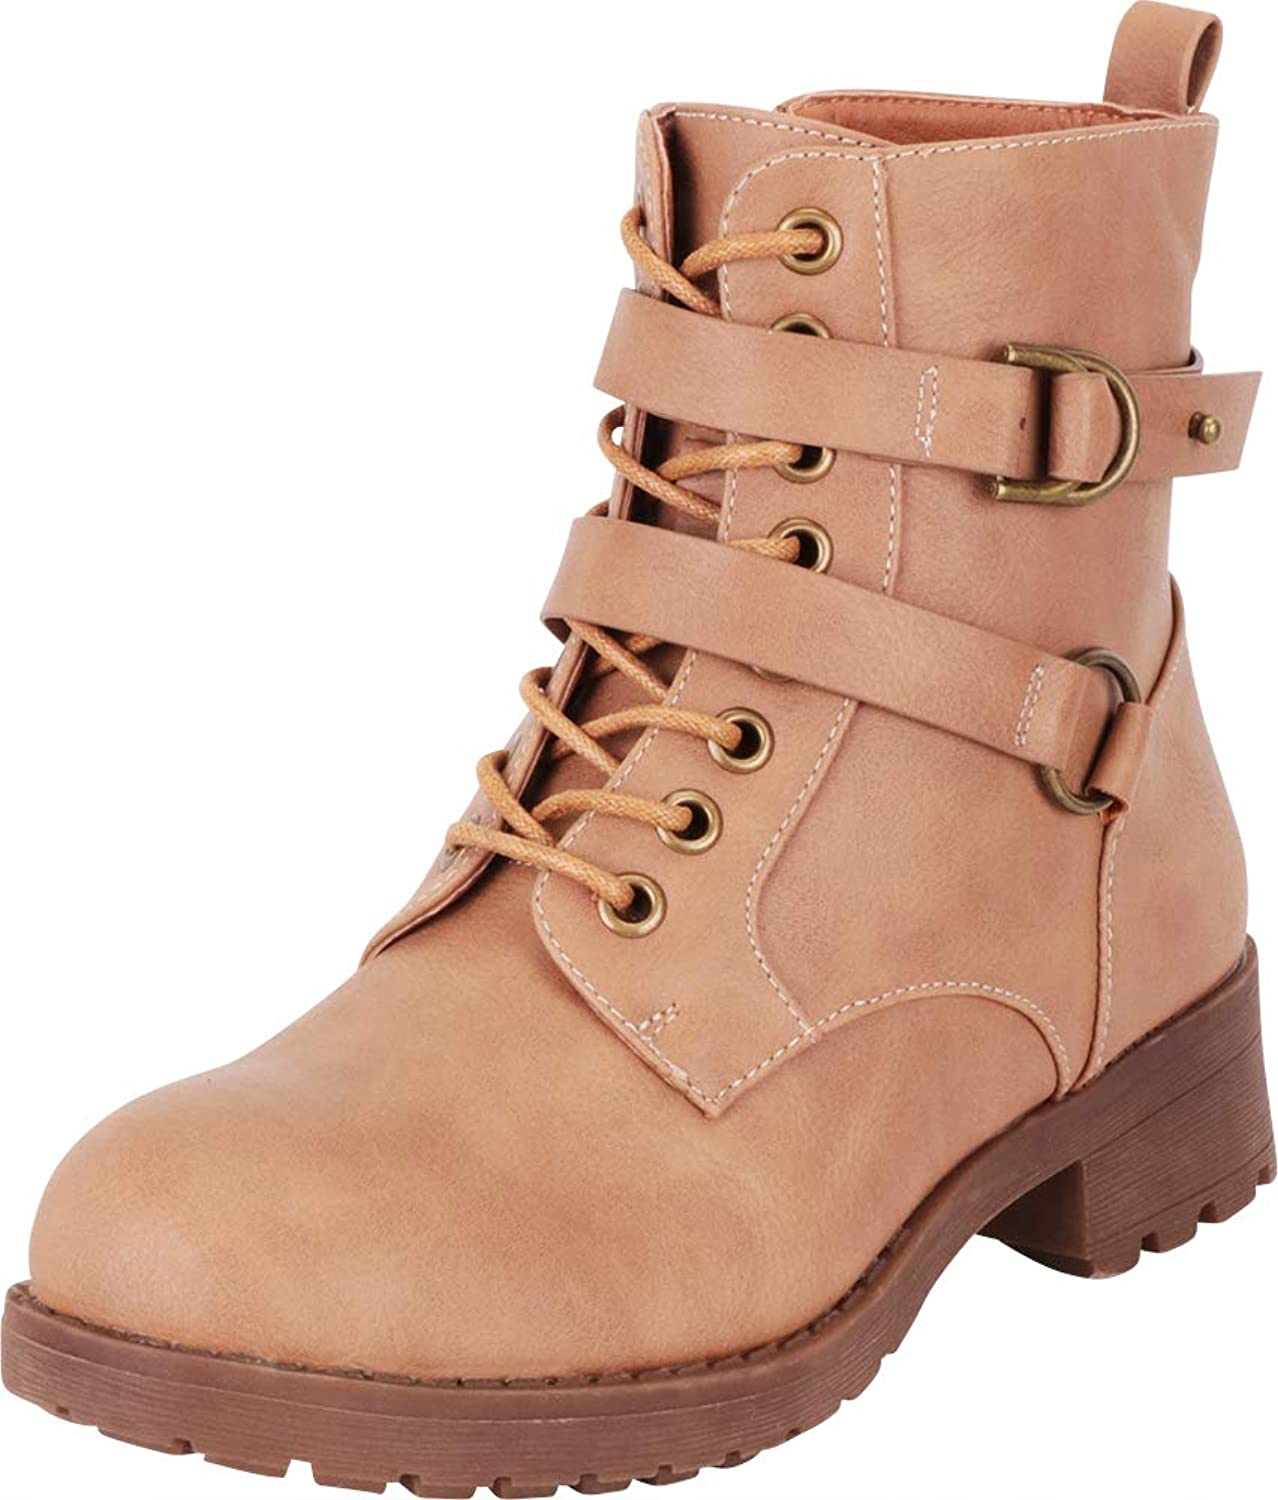 Cambridge Select Women's Crisscross Strappy Lace-Up Chunky Lug Sole Moto Combat Boot